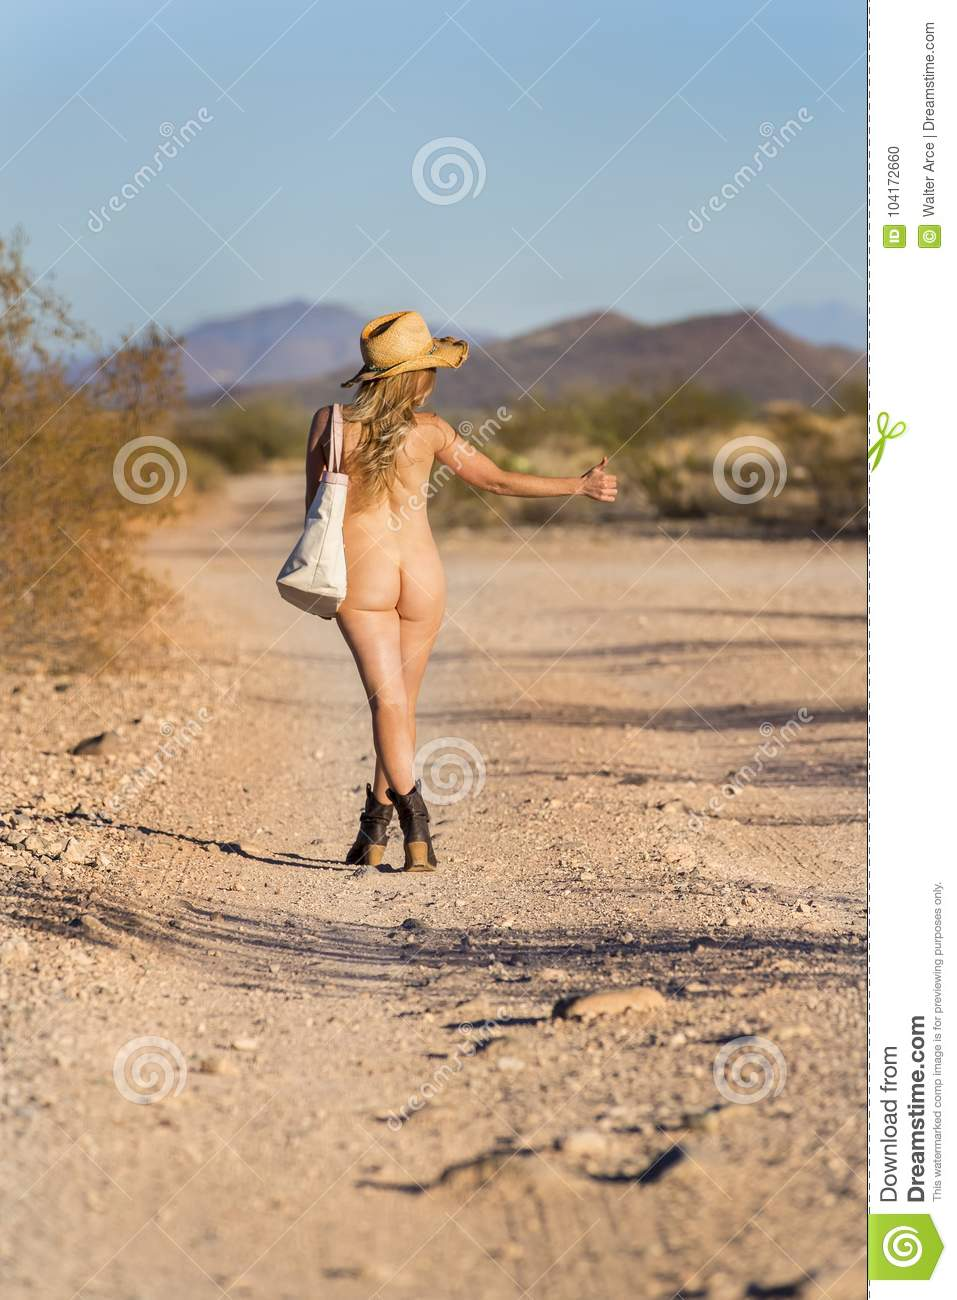 from Maximilian nude hitchhikers girls pics